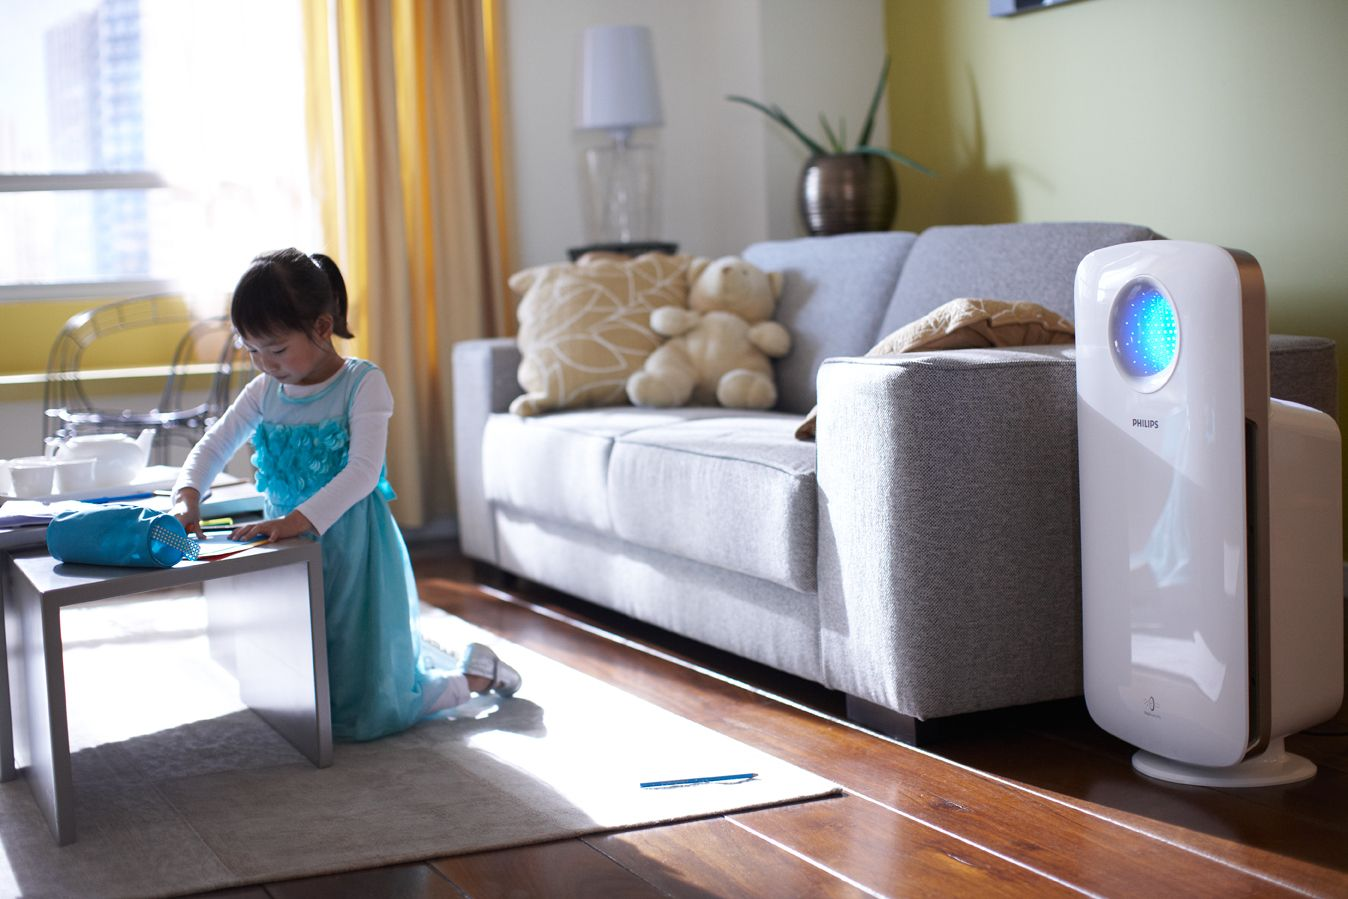 12 Surprising Cleaning Tips to Reduce Dust Home air